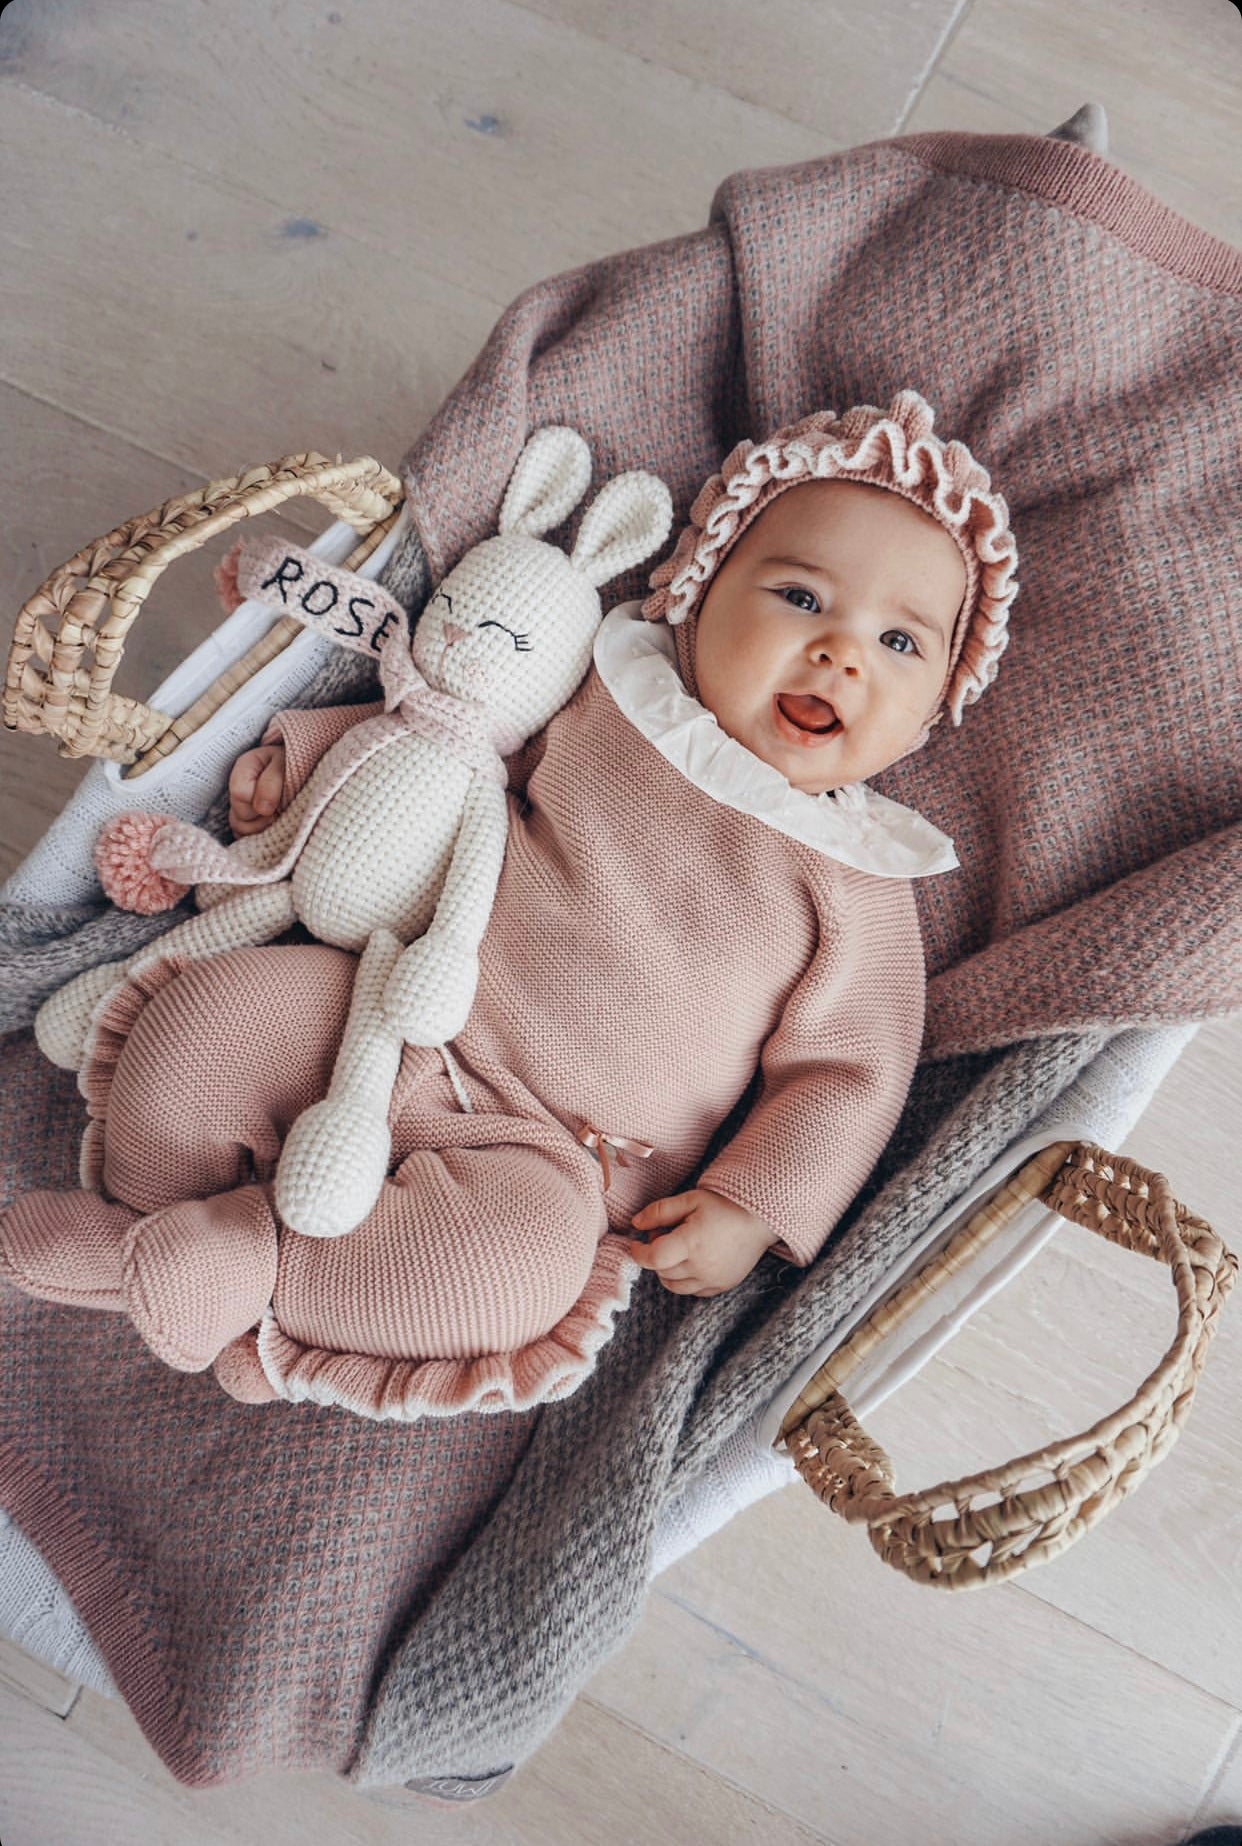 Rochy baby knitted 2 piece sets with ruffle details